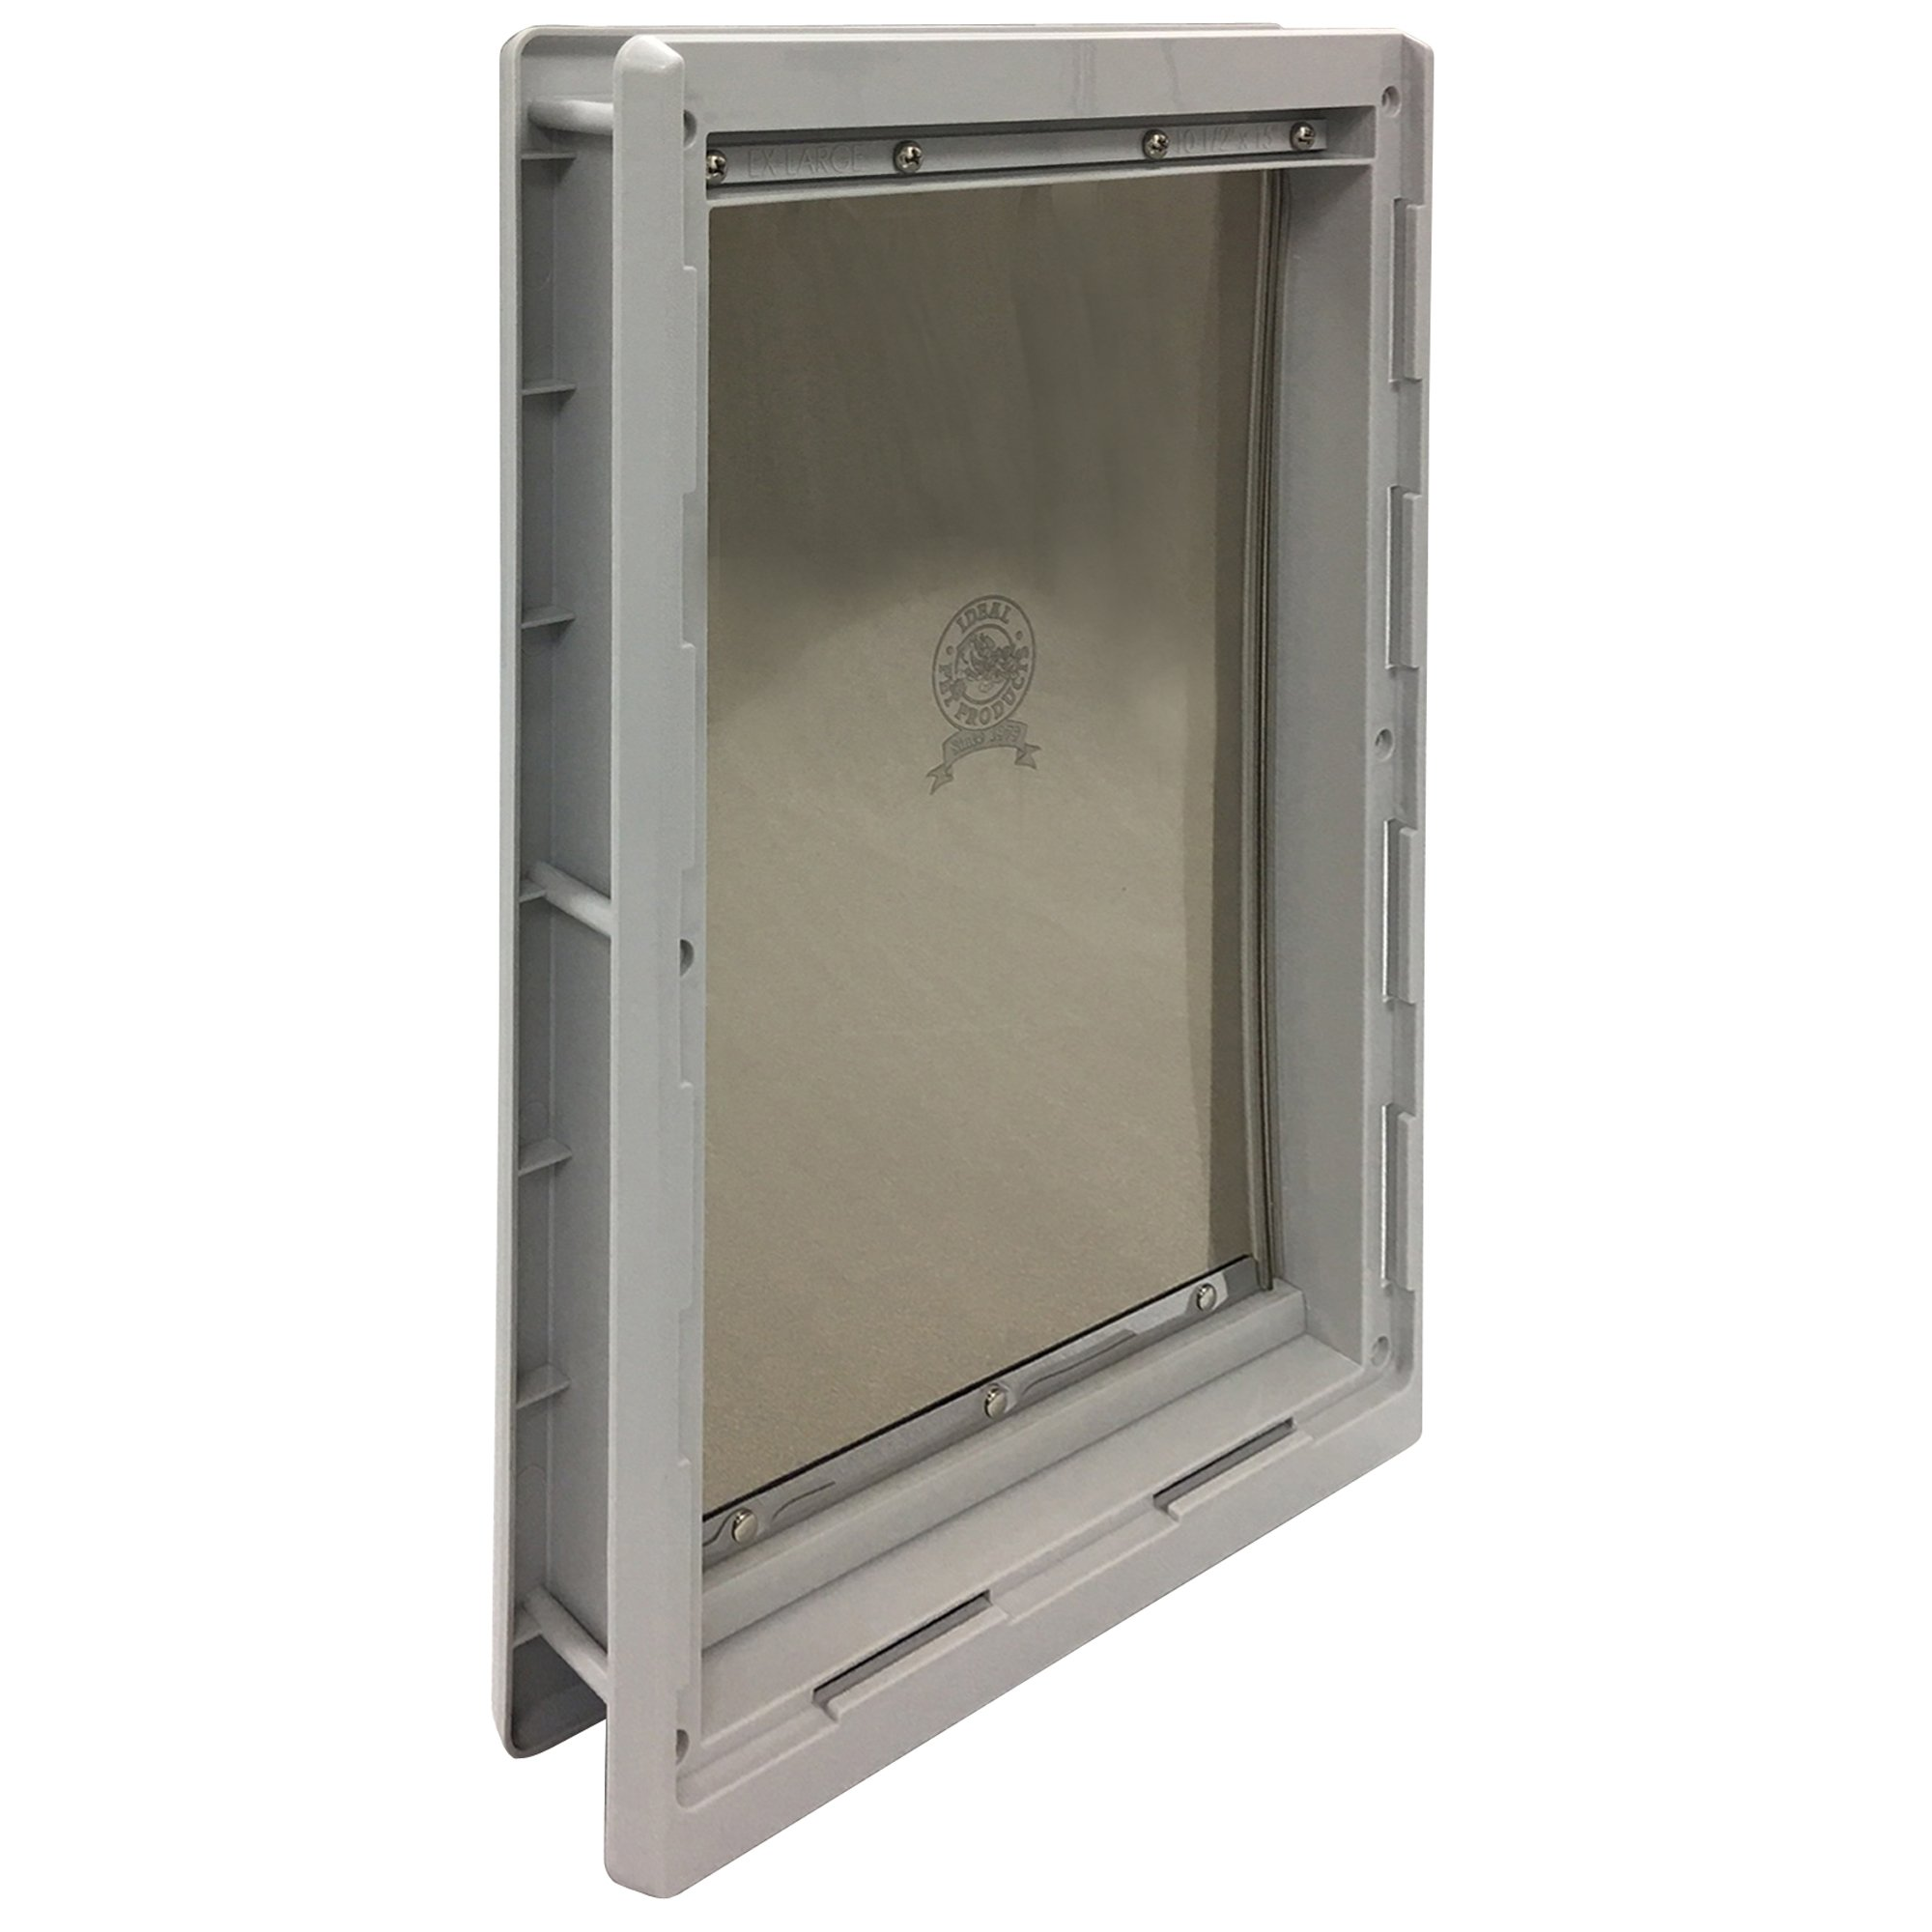 Ideal Pet Products Designer Series Plastic Pet Door with Telescoping Frame, Extra-Large, 10.5'' x 15'' Flap Size